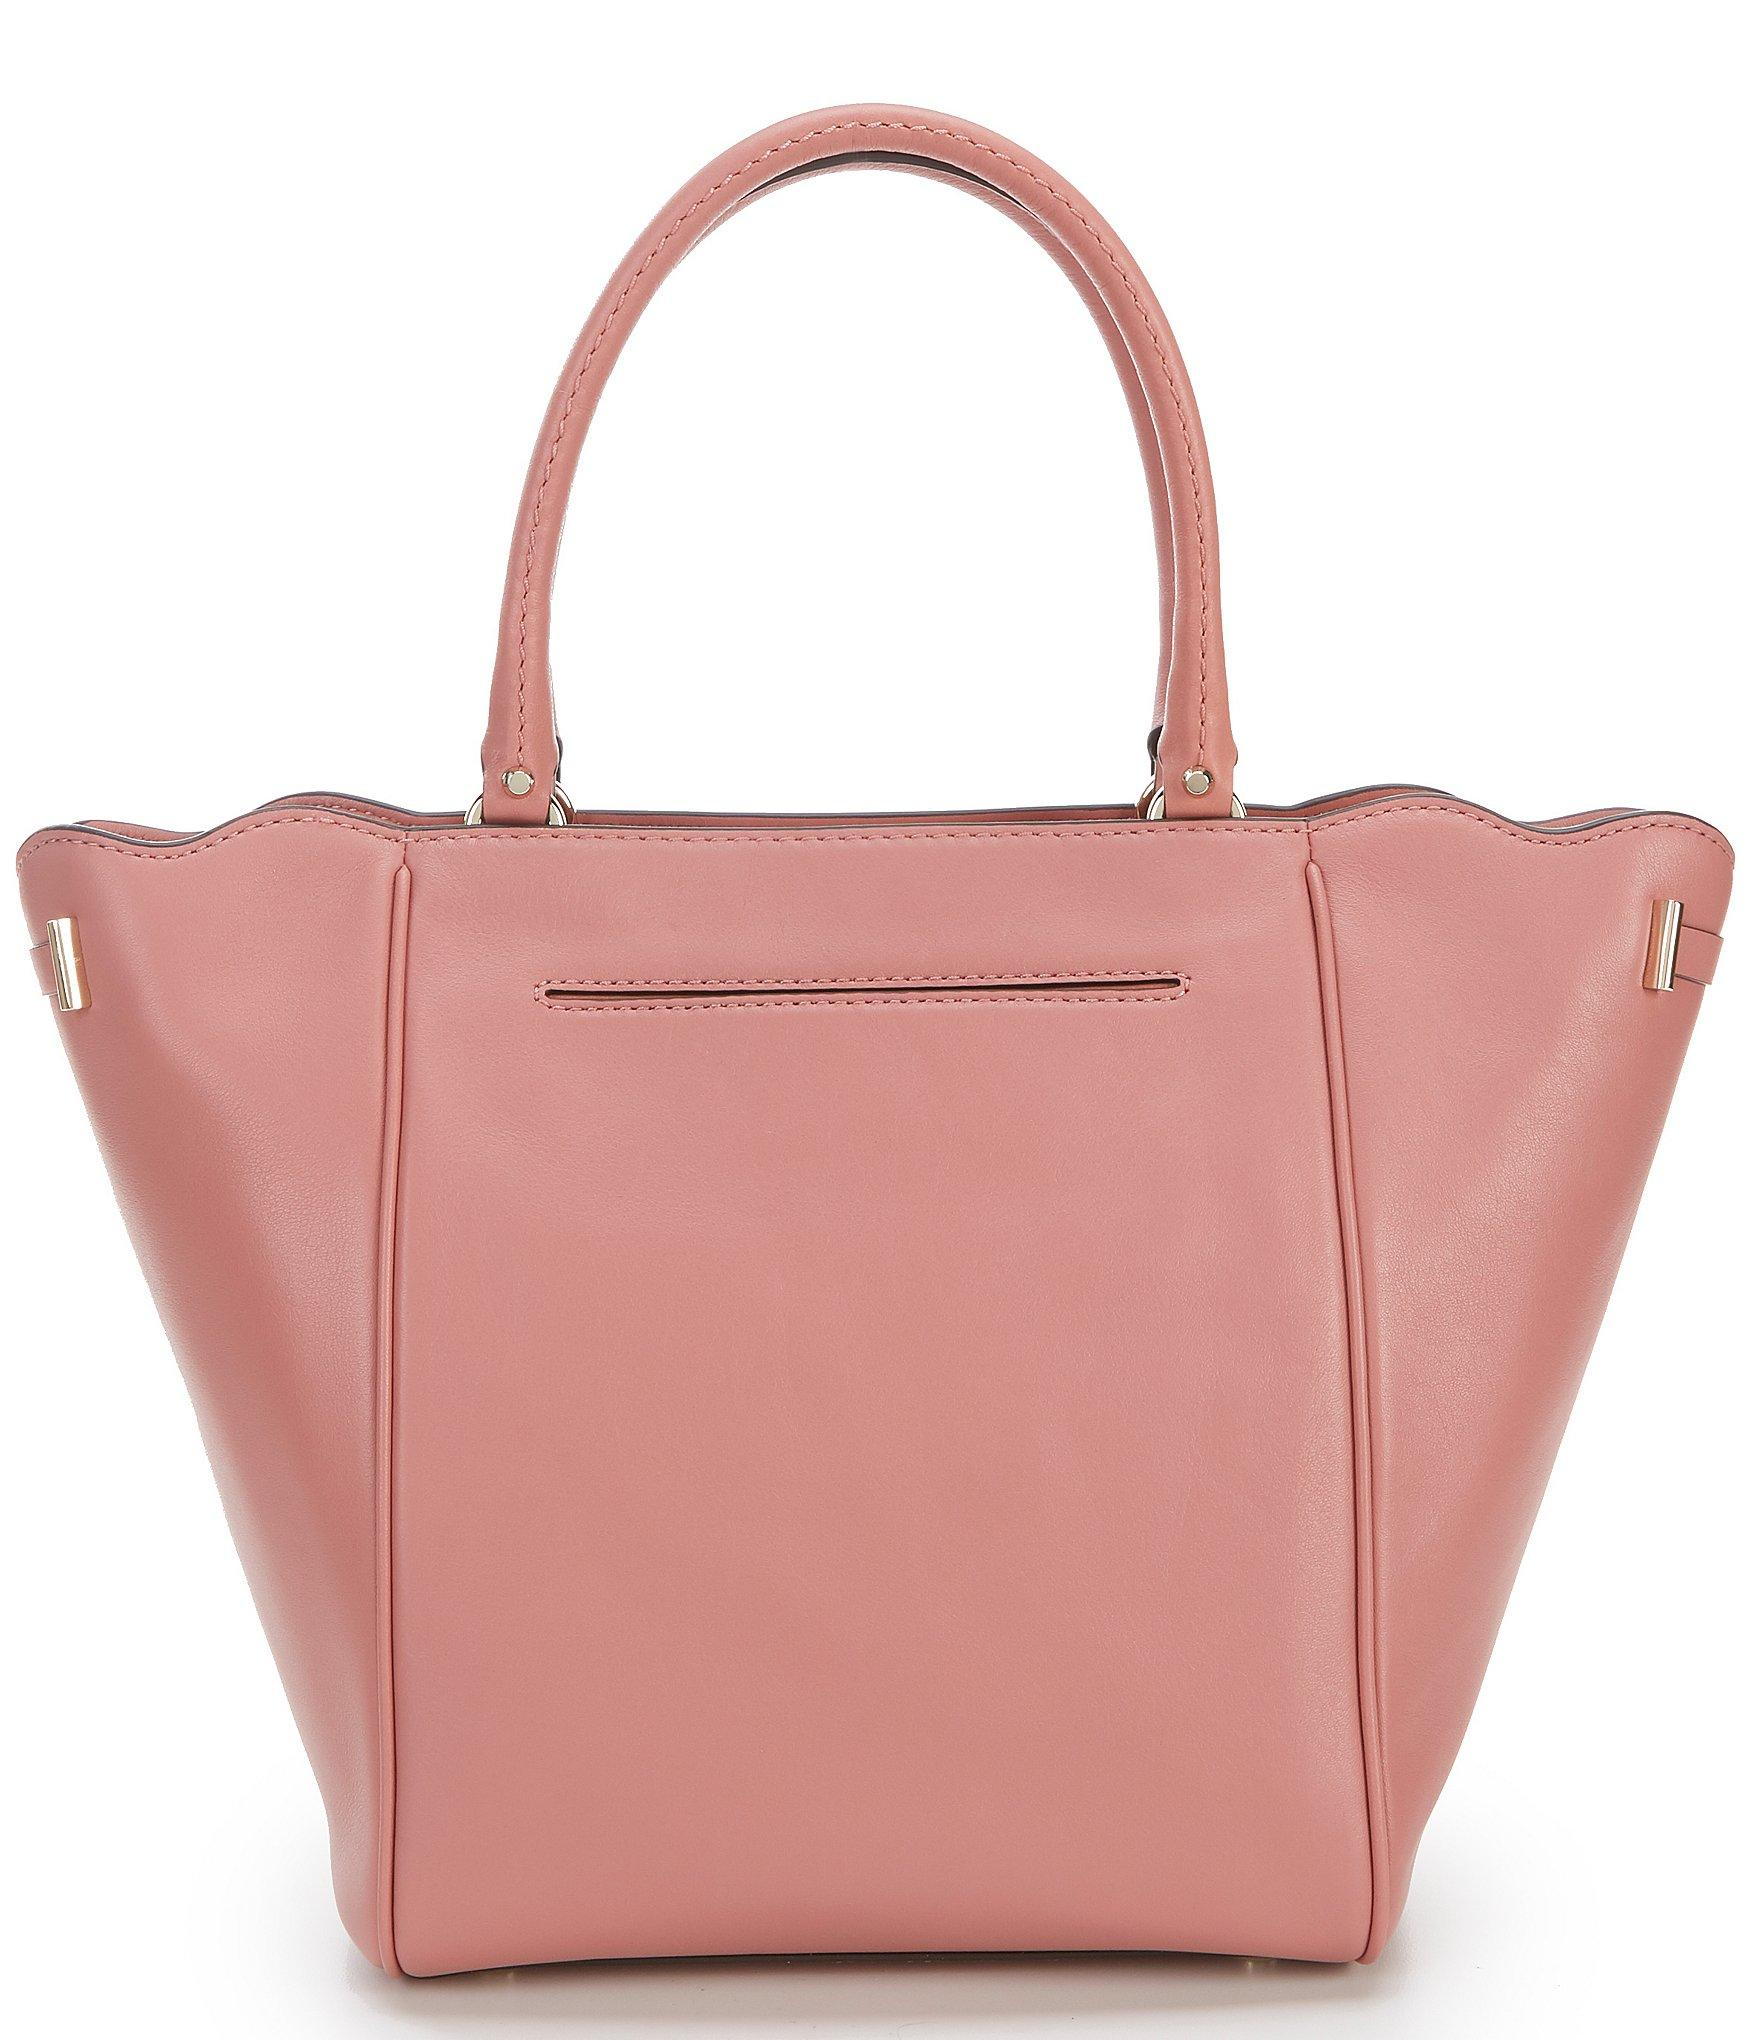 fe5feab070e7 MICHAEL Michael Kors - Multicolor Amelia Medium Top Zip Tote Bag - Lyst.  View fullscreen